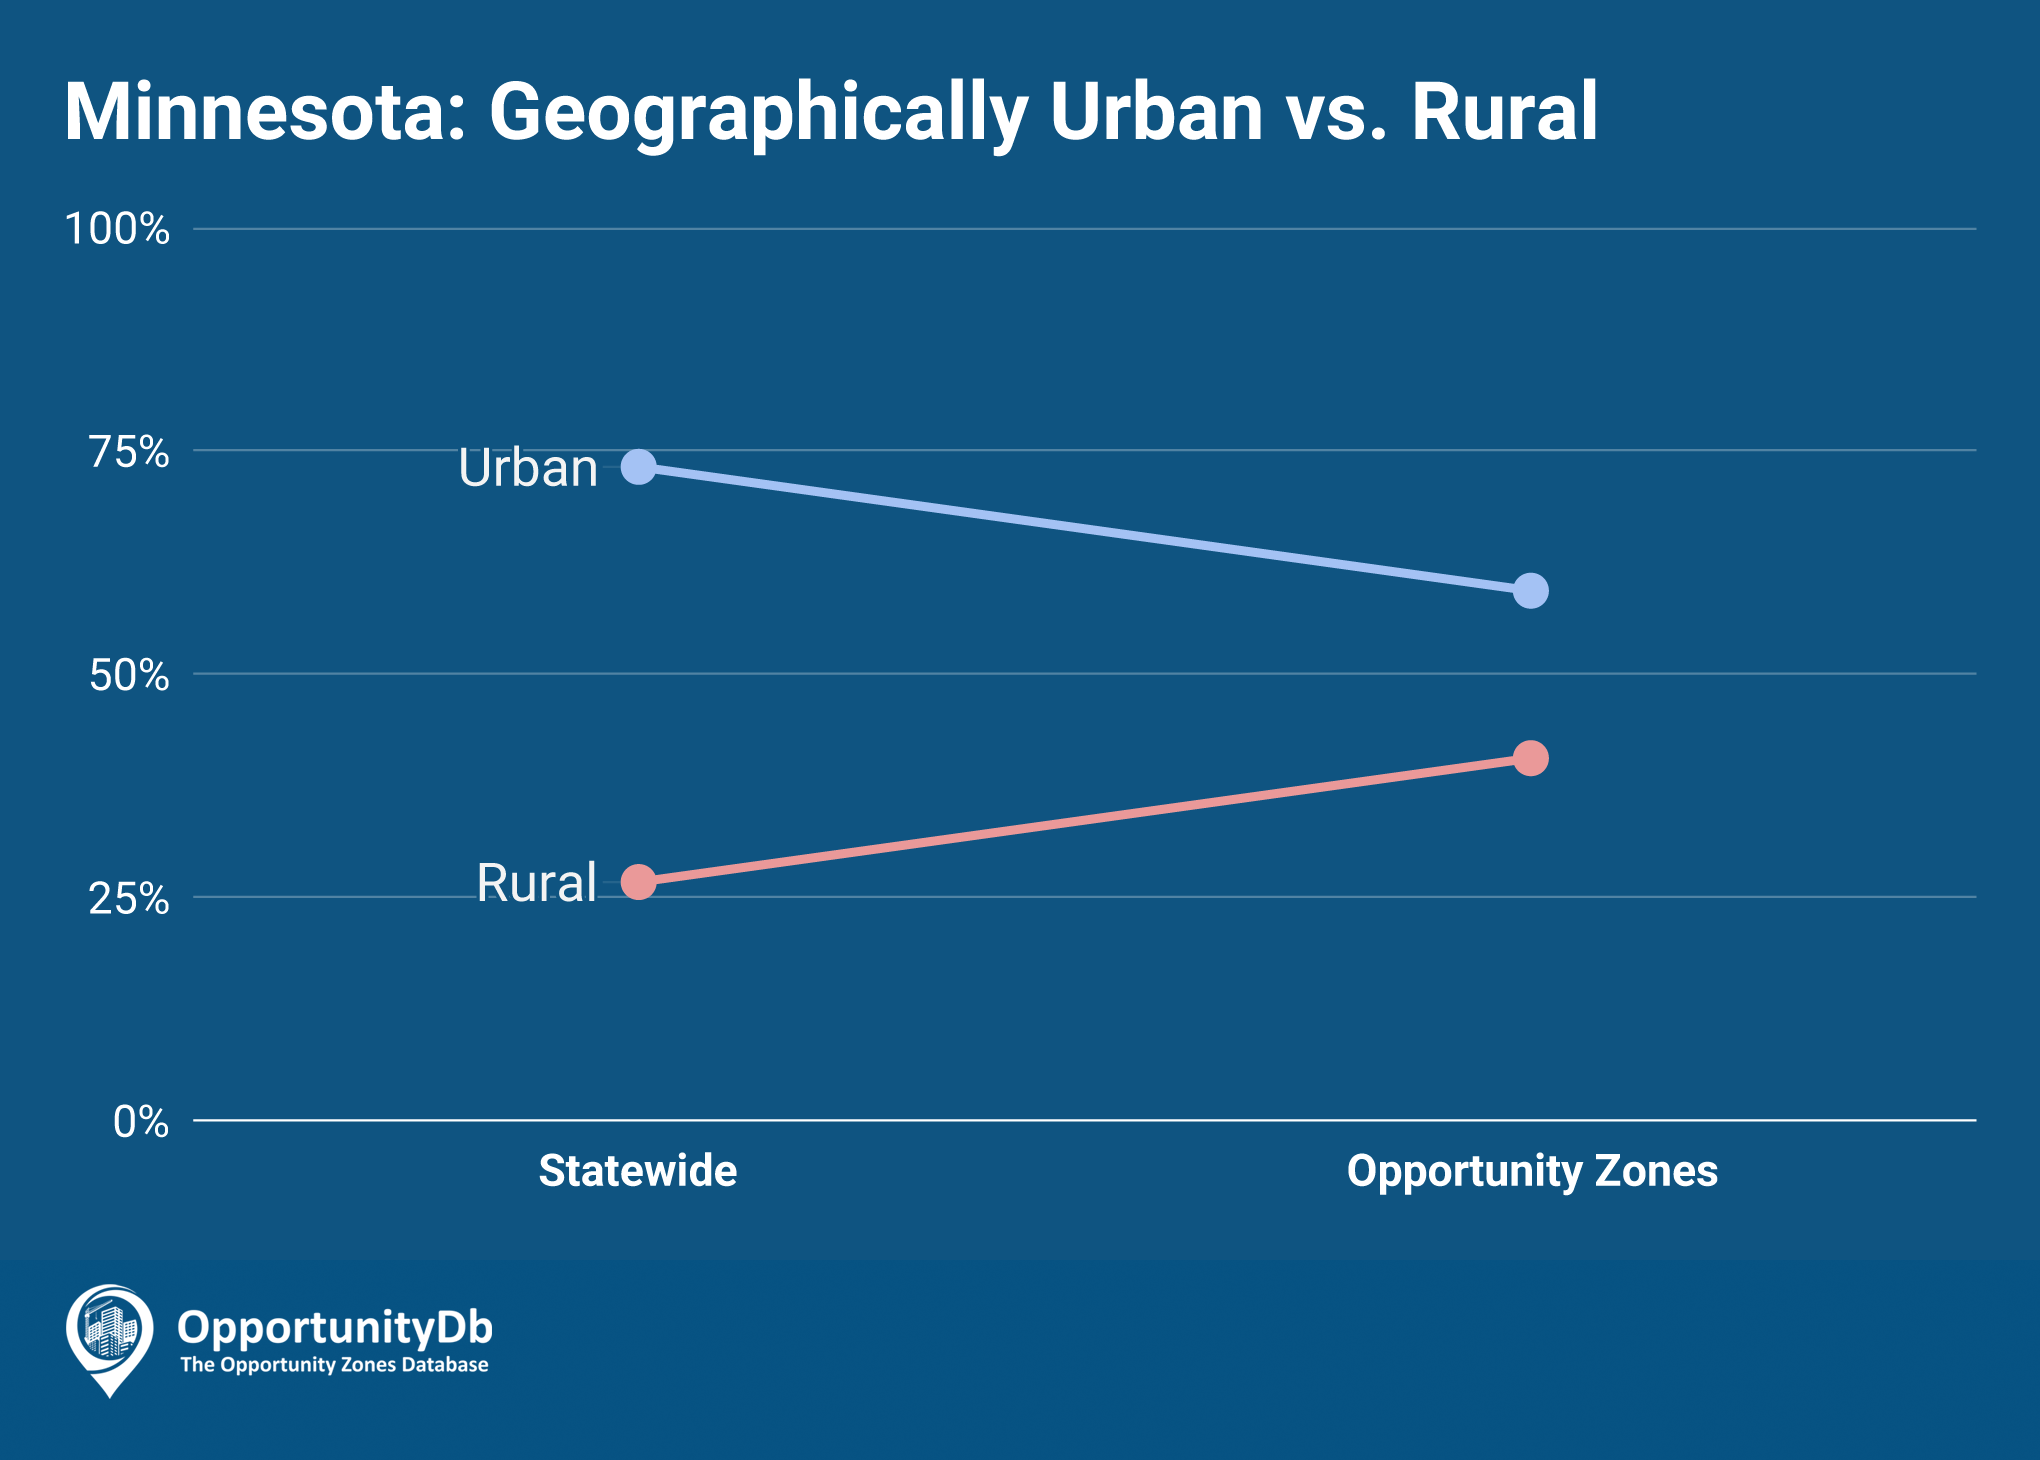 Urban vs. Rural in Minnesota Opportunity Zones